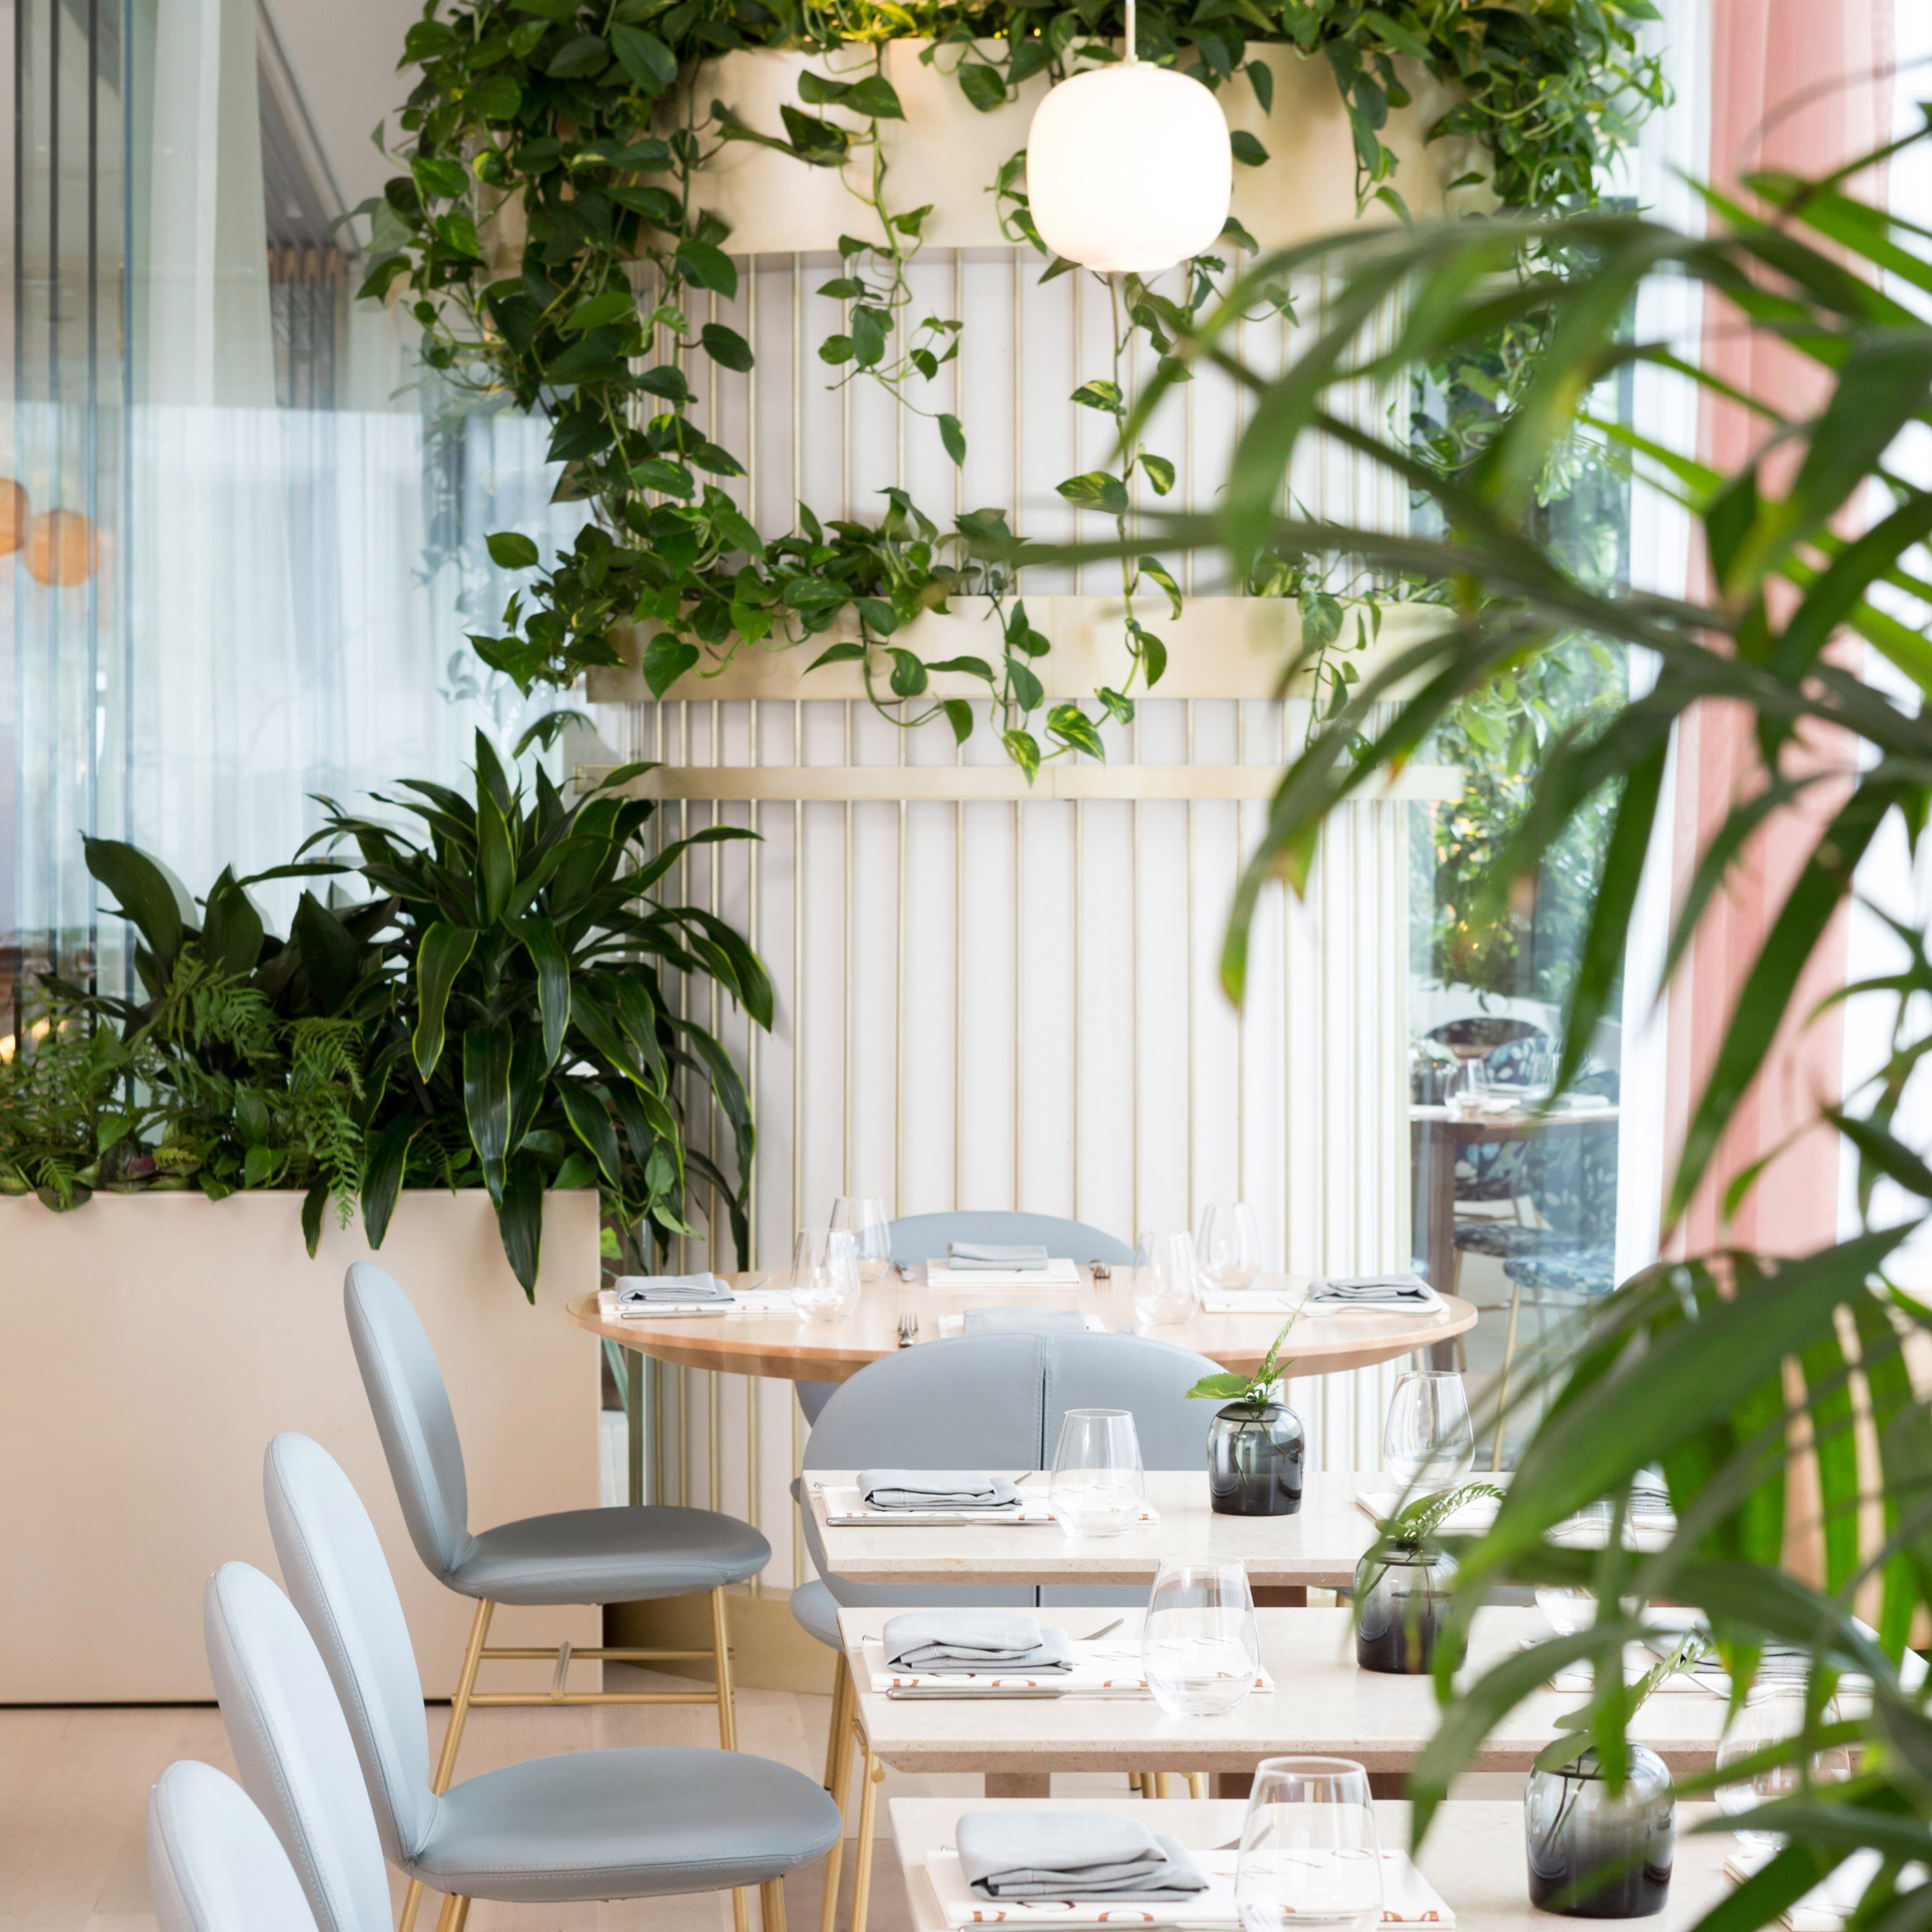 The Botanist Restaurant By Ste Marie Has Rosy Hints And Copious Greenery